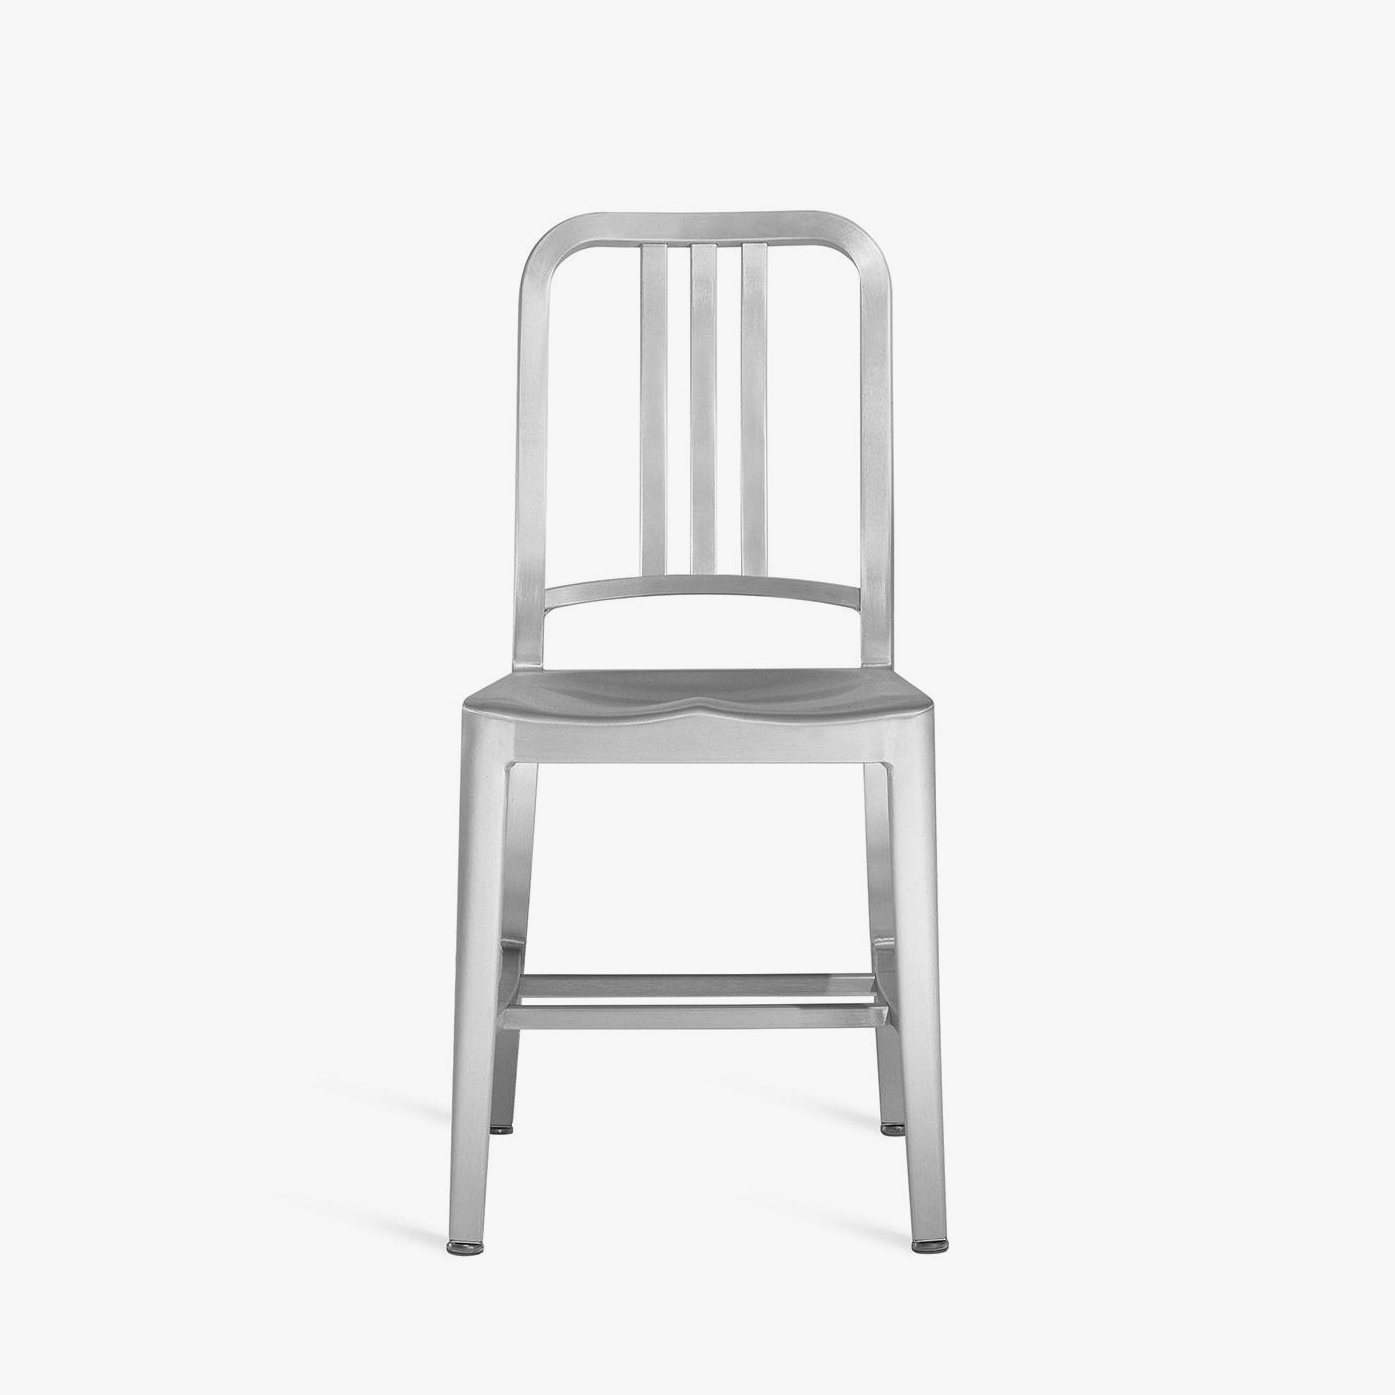 Navy Chair by Wilton C Dinges for Emeco